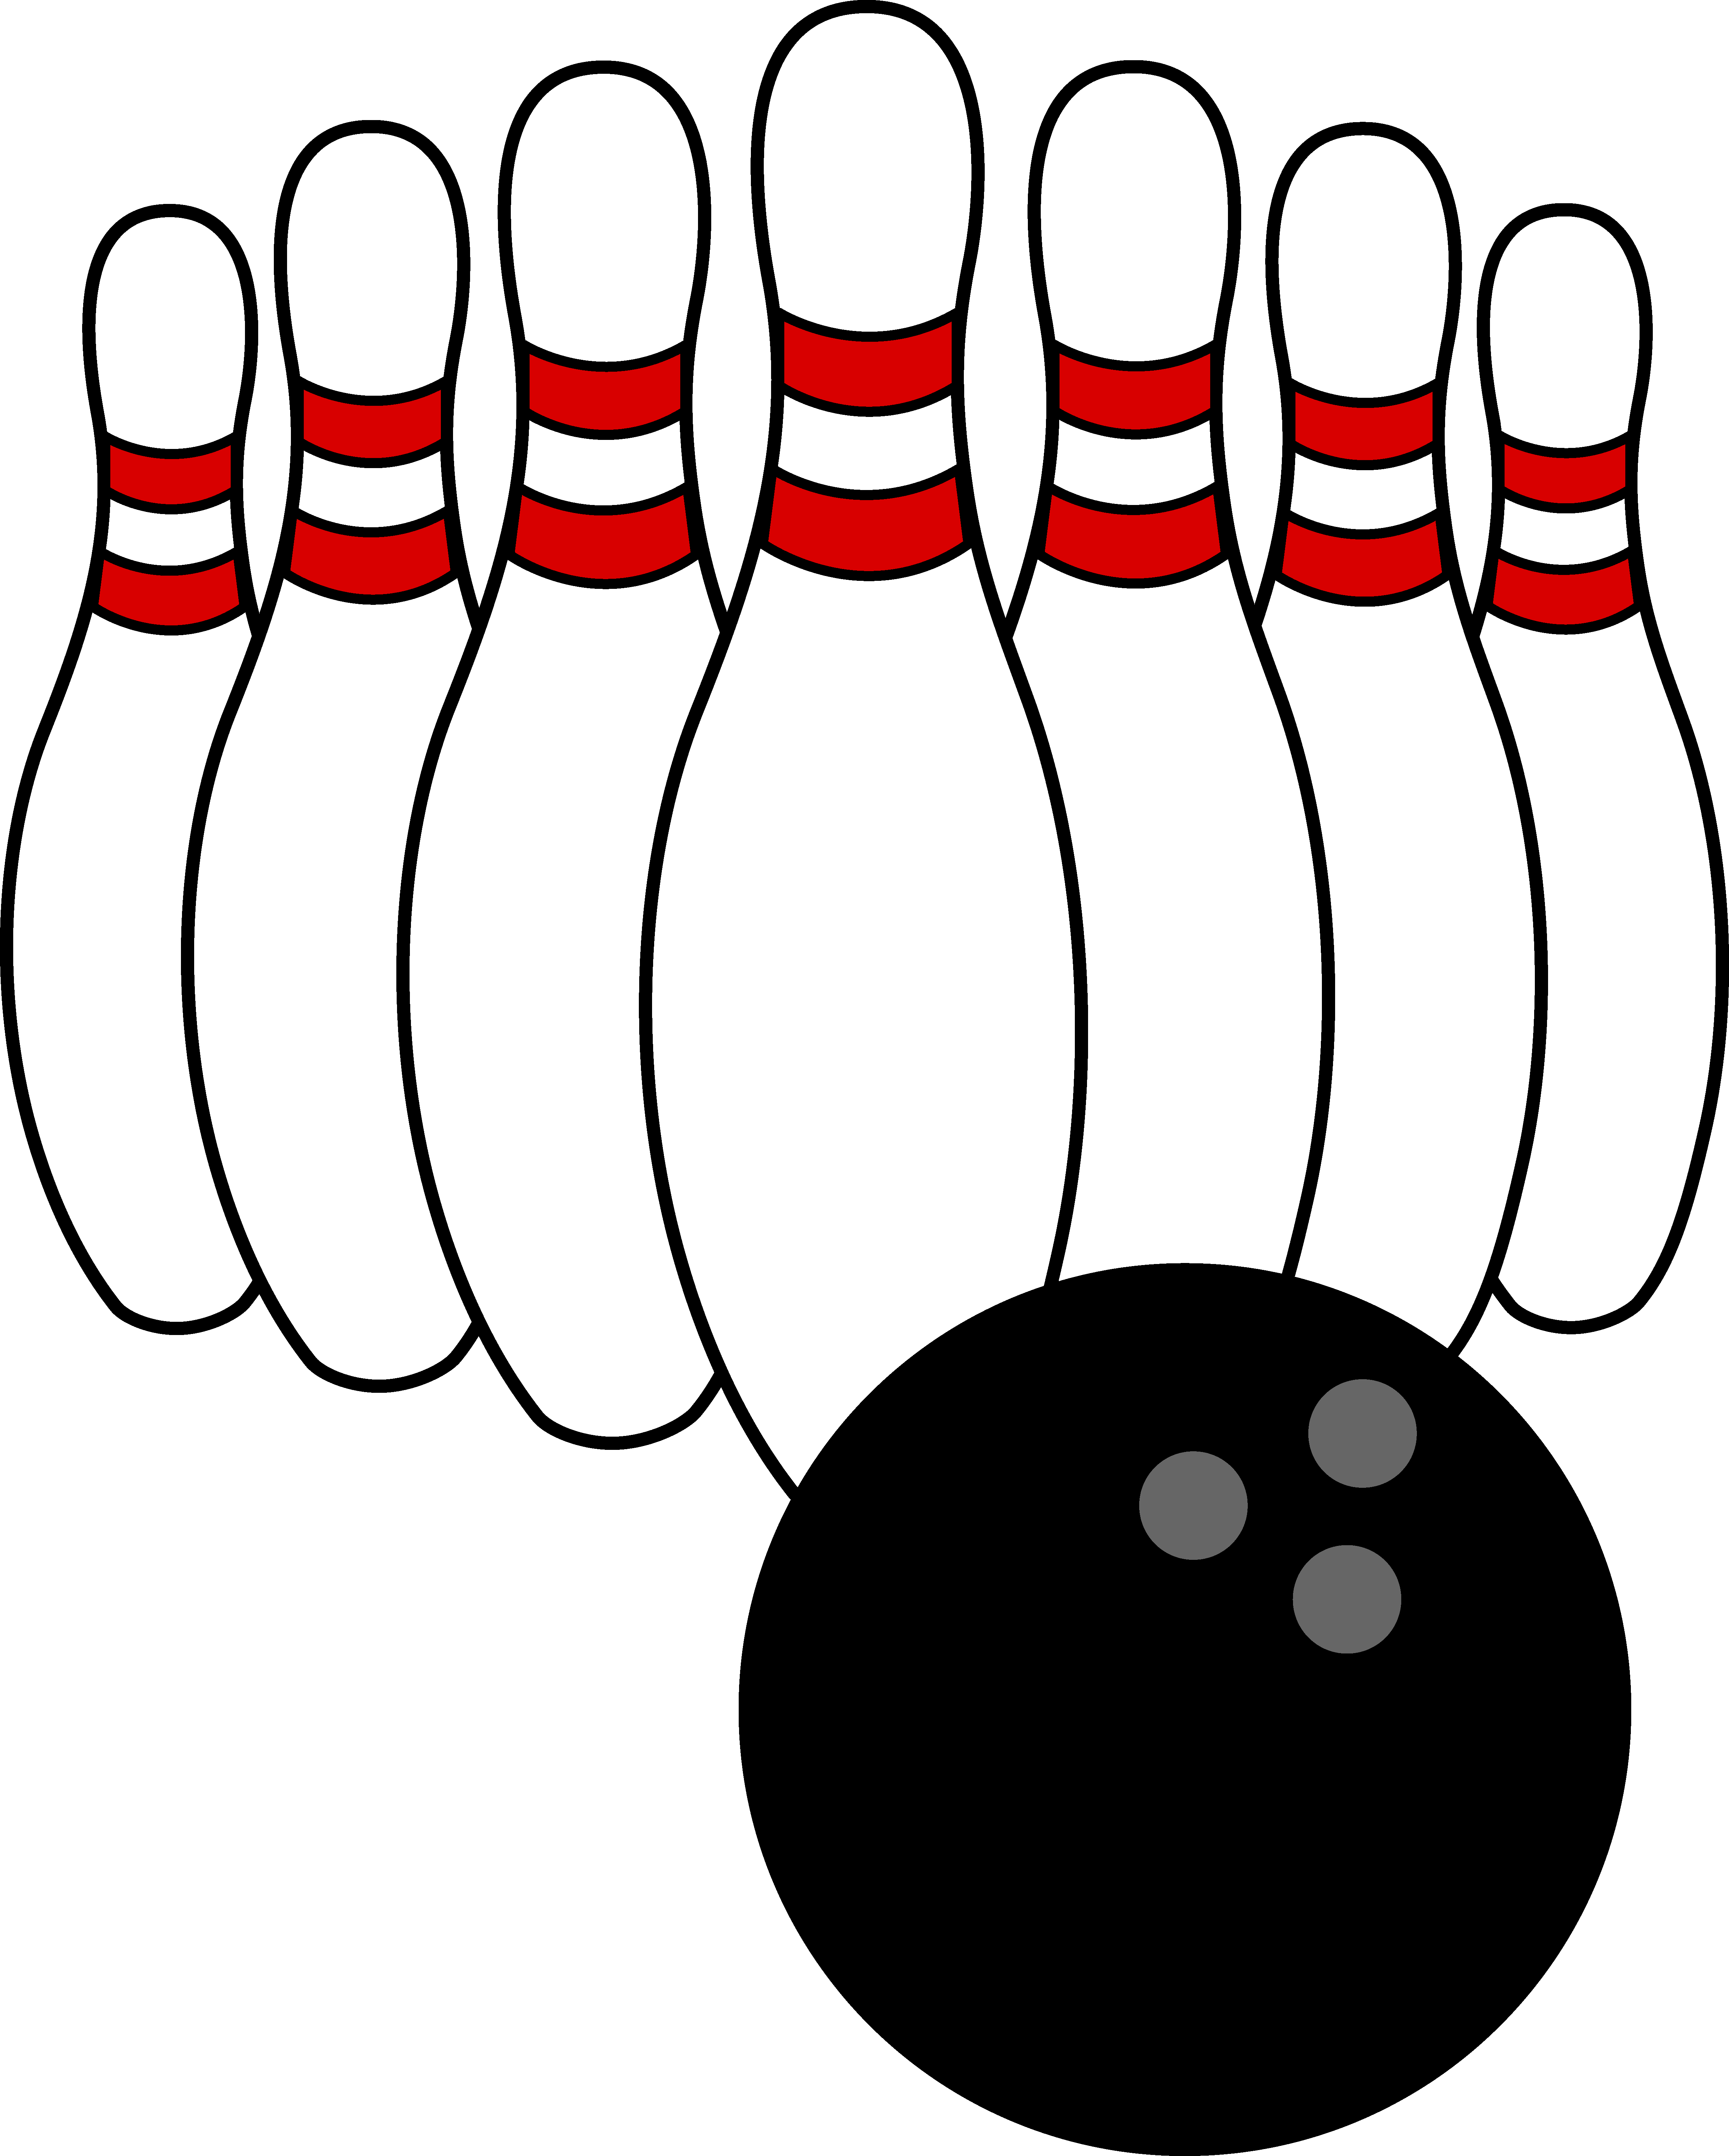 Boweling clipart png library stock Bowling Clip Art | Bowling Ball and Pins | BOWLING | Bowling ball ... png library stock